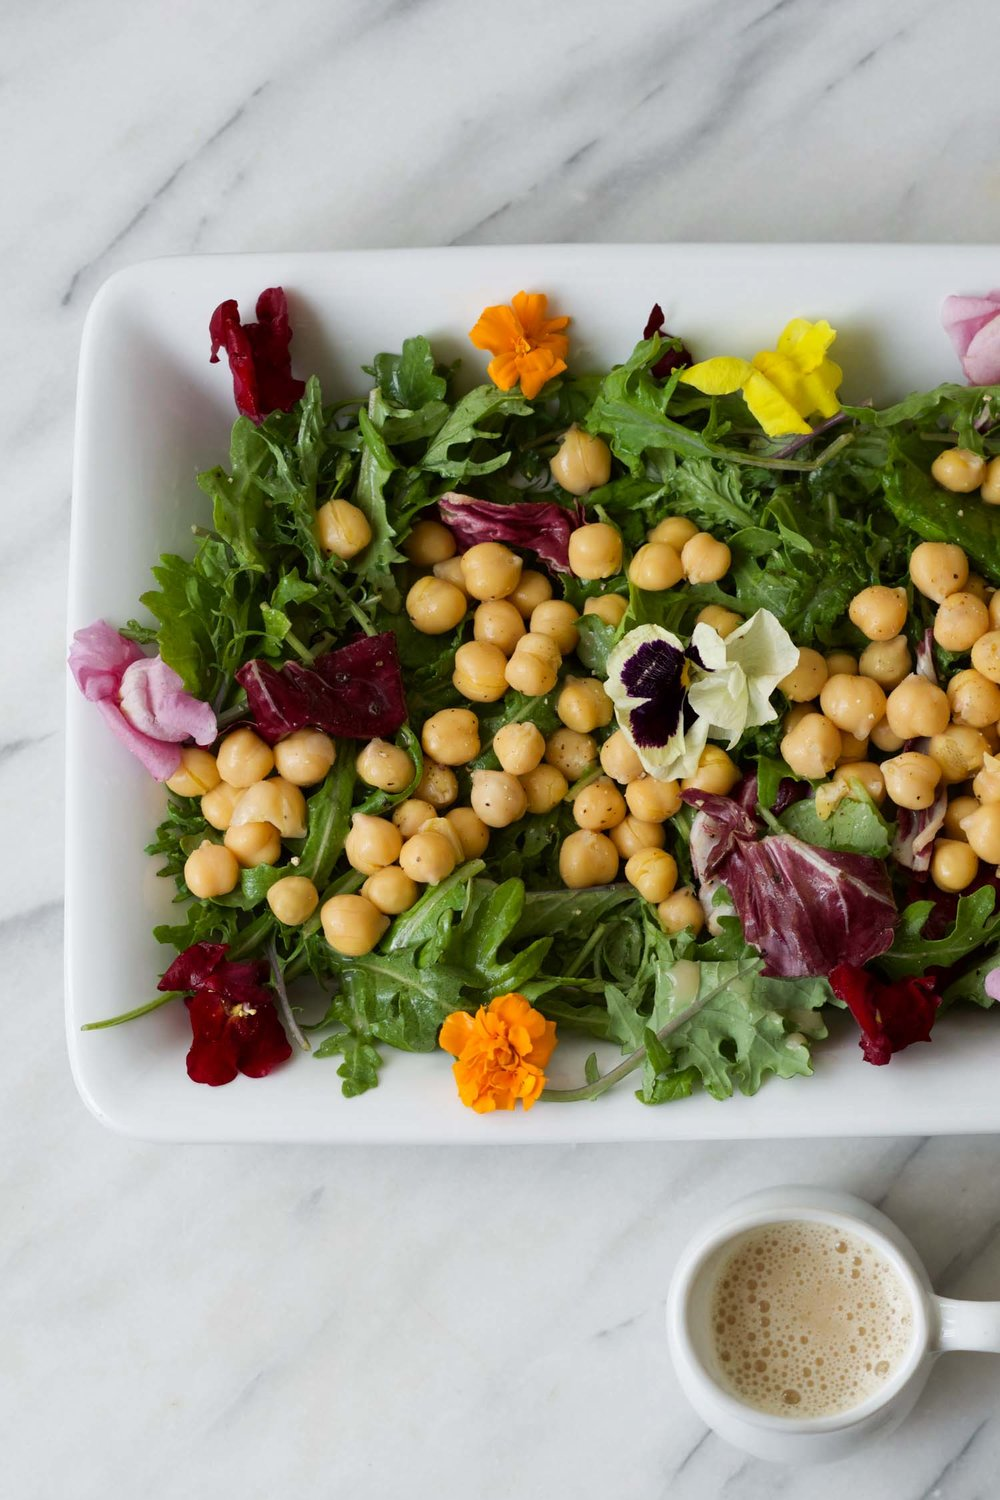 Make a beautiful salad easily with The Go-To Oil-Free Salad Dressing by Beautiful Ingredient.